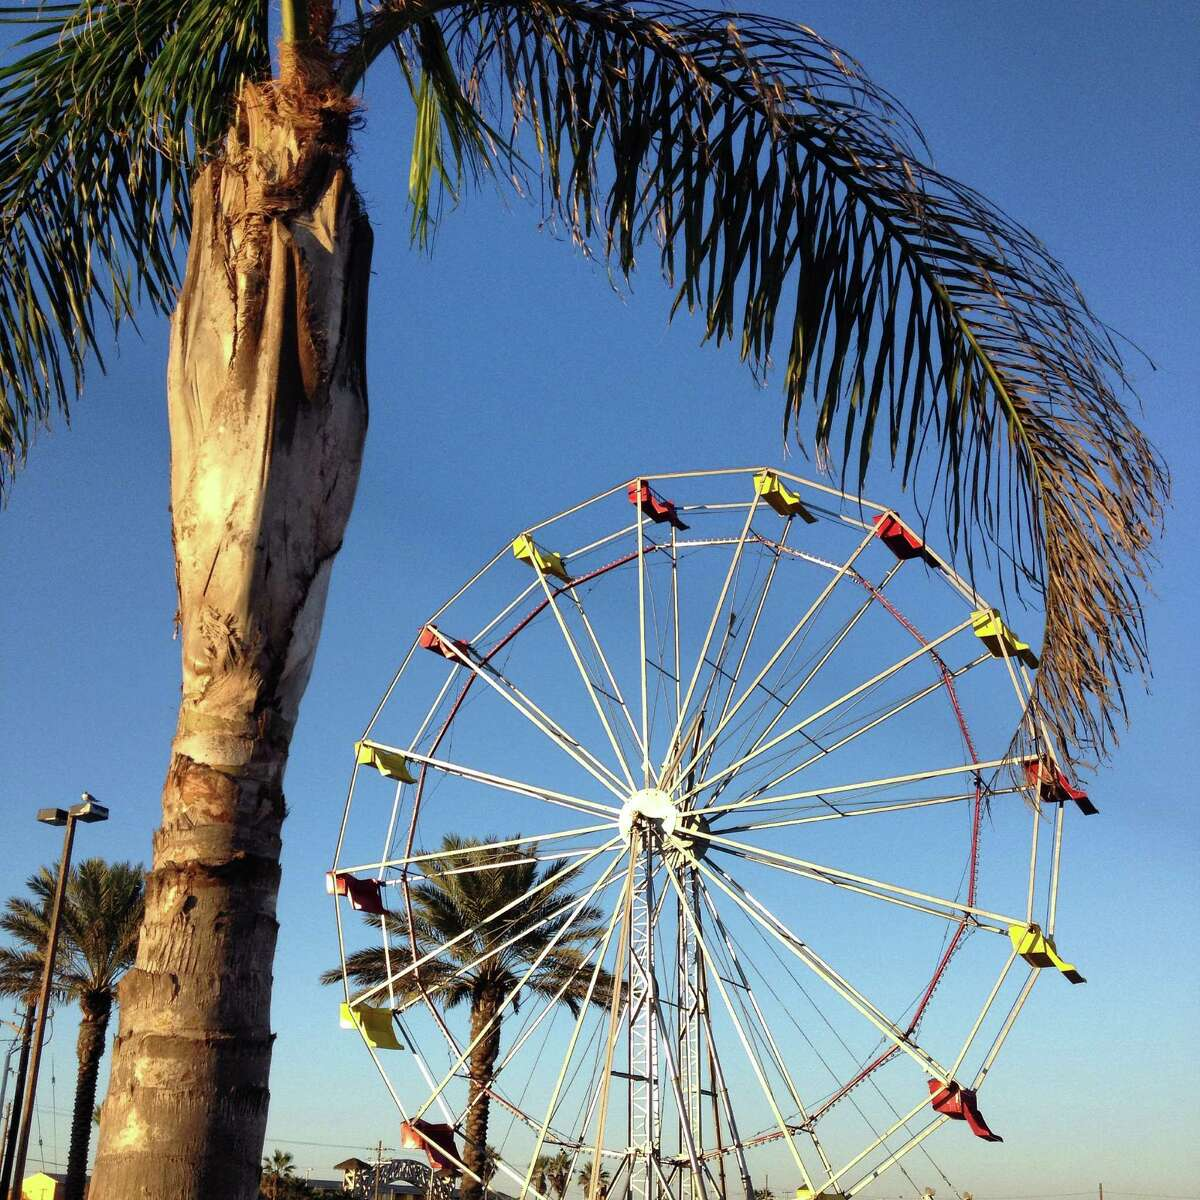 The Ferris wheel at Fajitaville on North Beach, 221 S Hotel Pl., Corpus Christi.